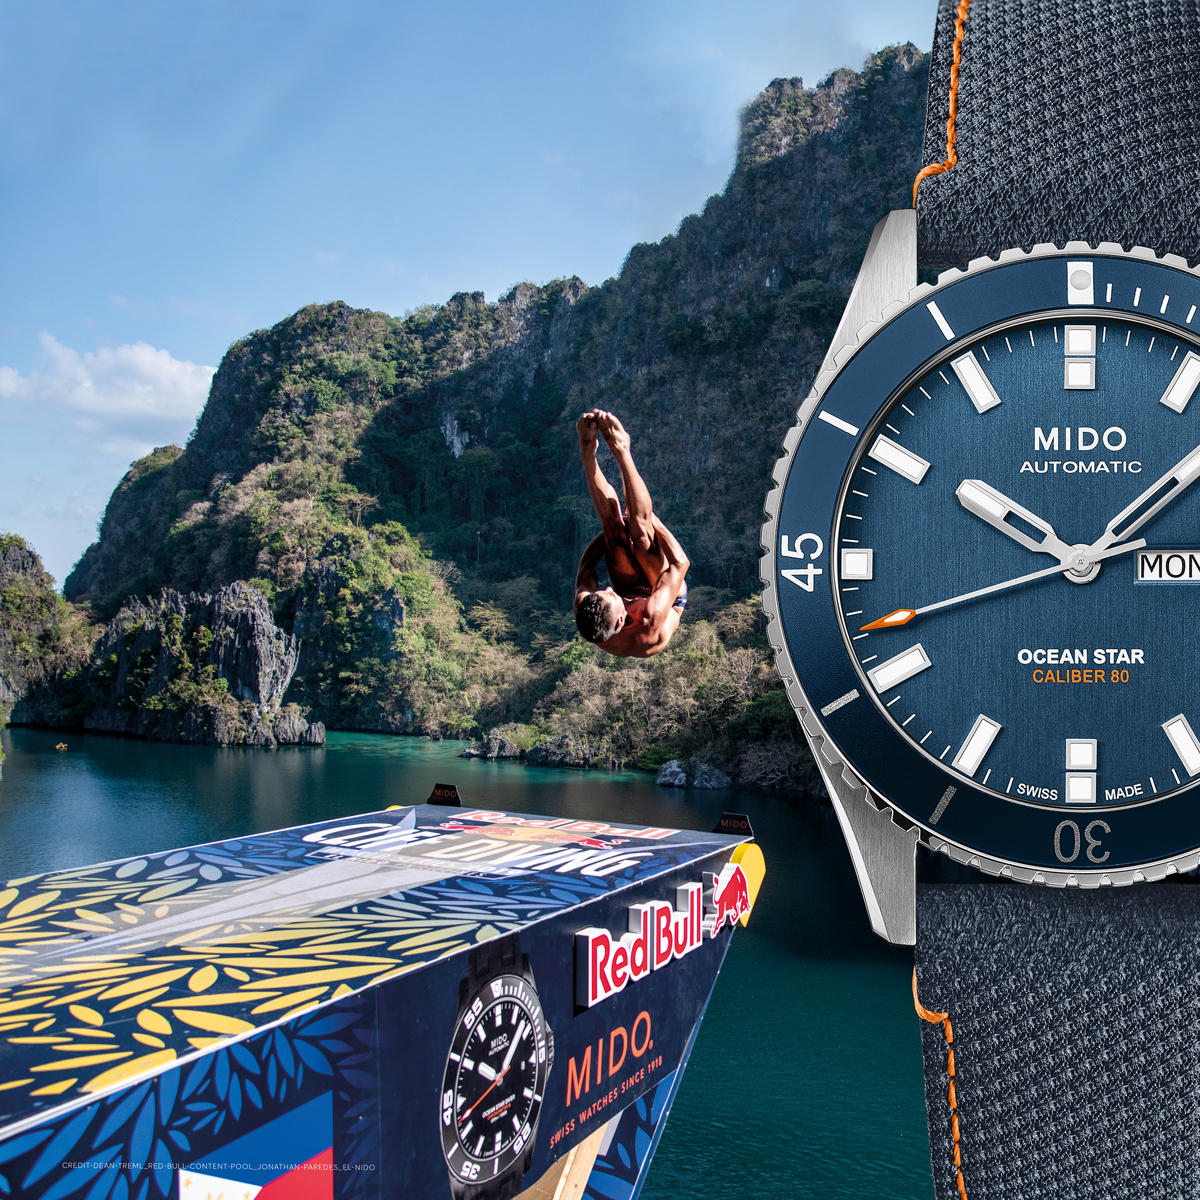 Mido M0264301704100 OCEAN STAR Red Bull Cliff Diving Limited Edition